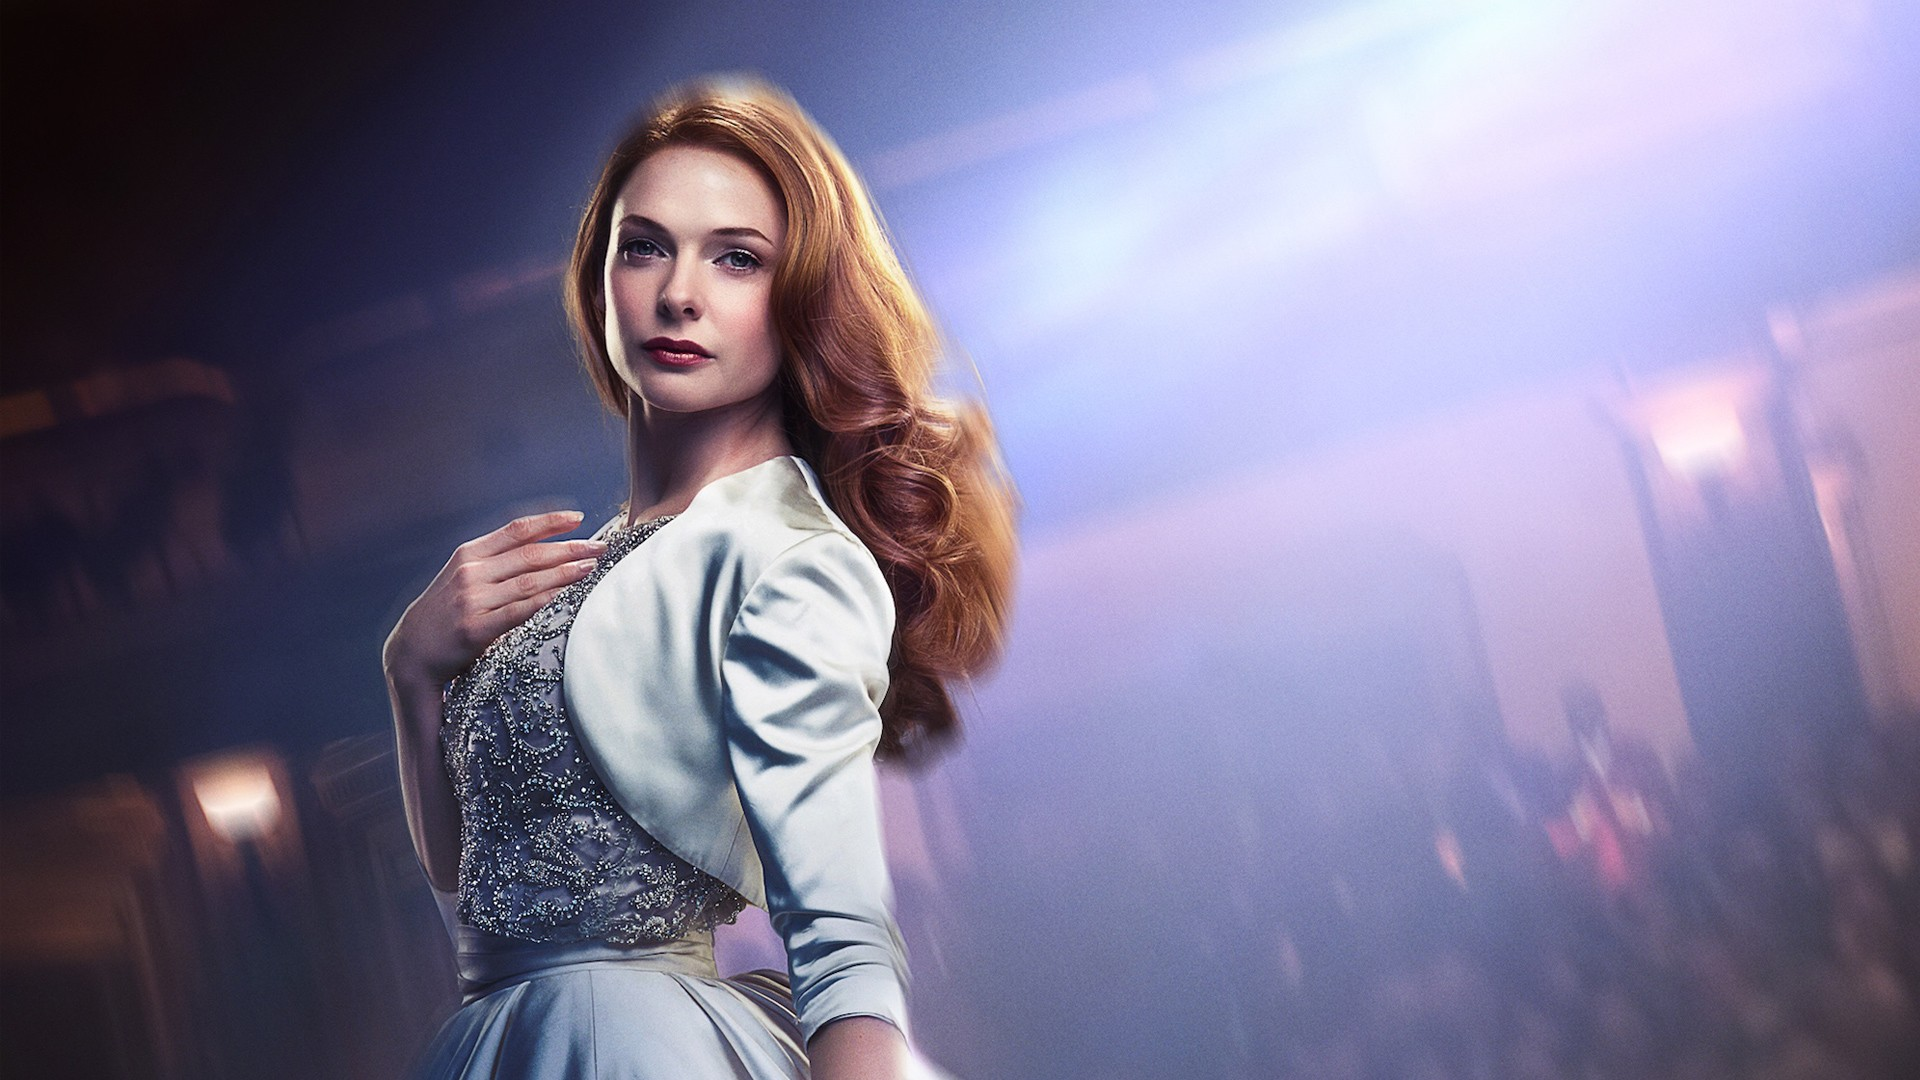 Iphone 6 Wallpaper Cars Rebecca Ferguson In The Greatest Showman Wallpapers Hd